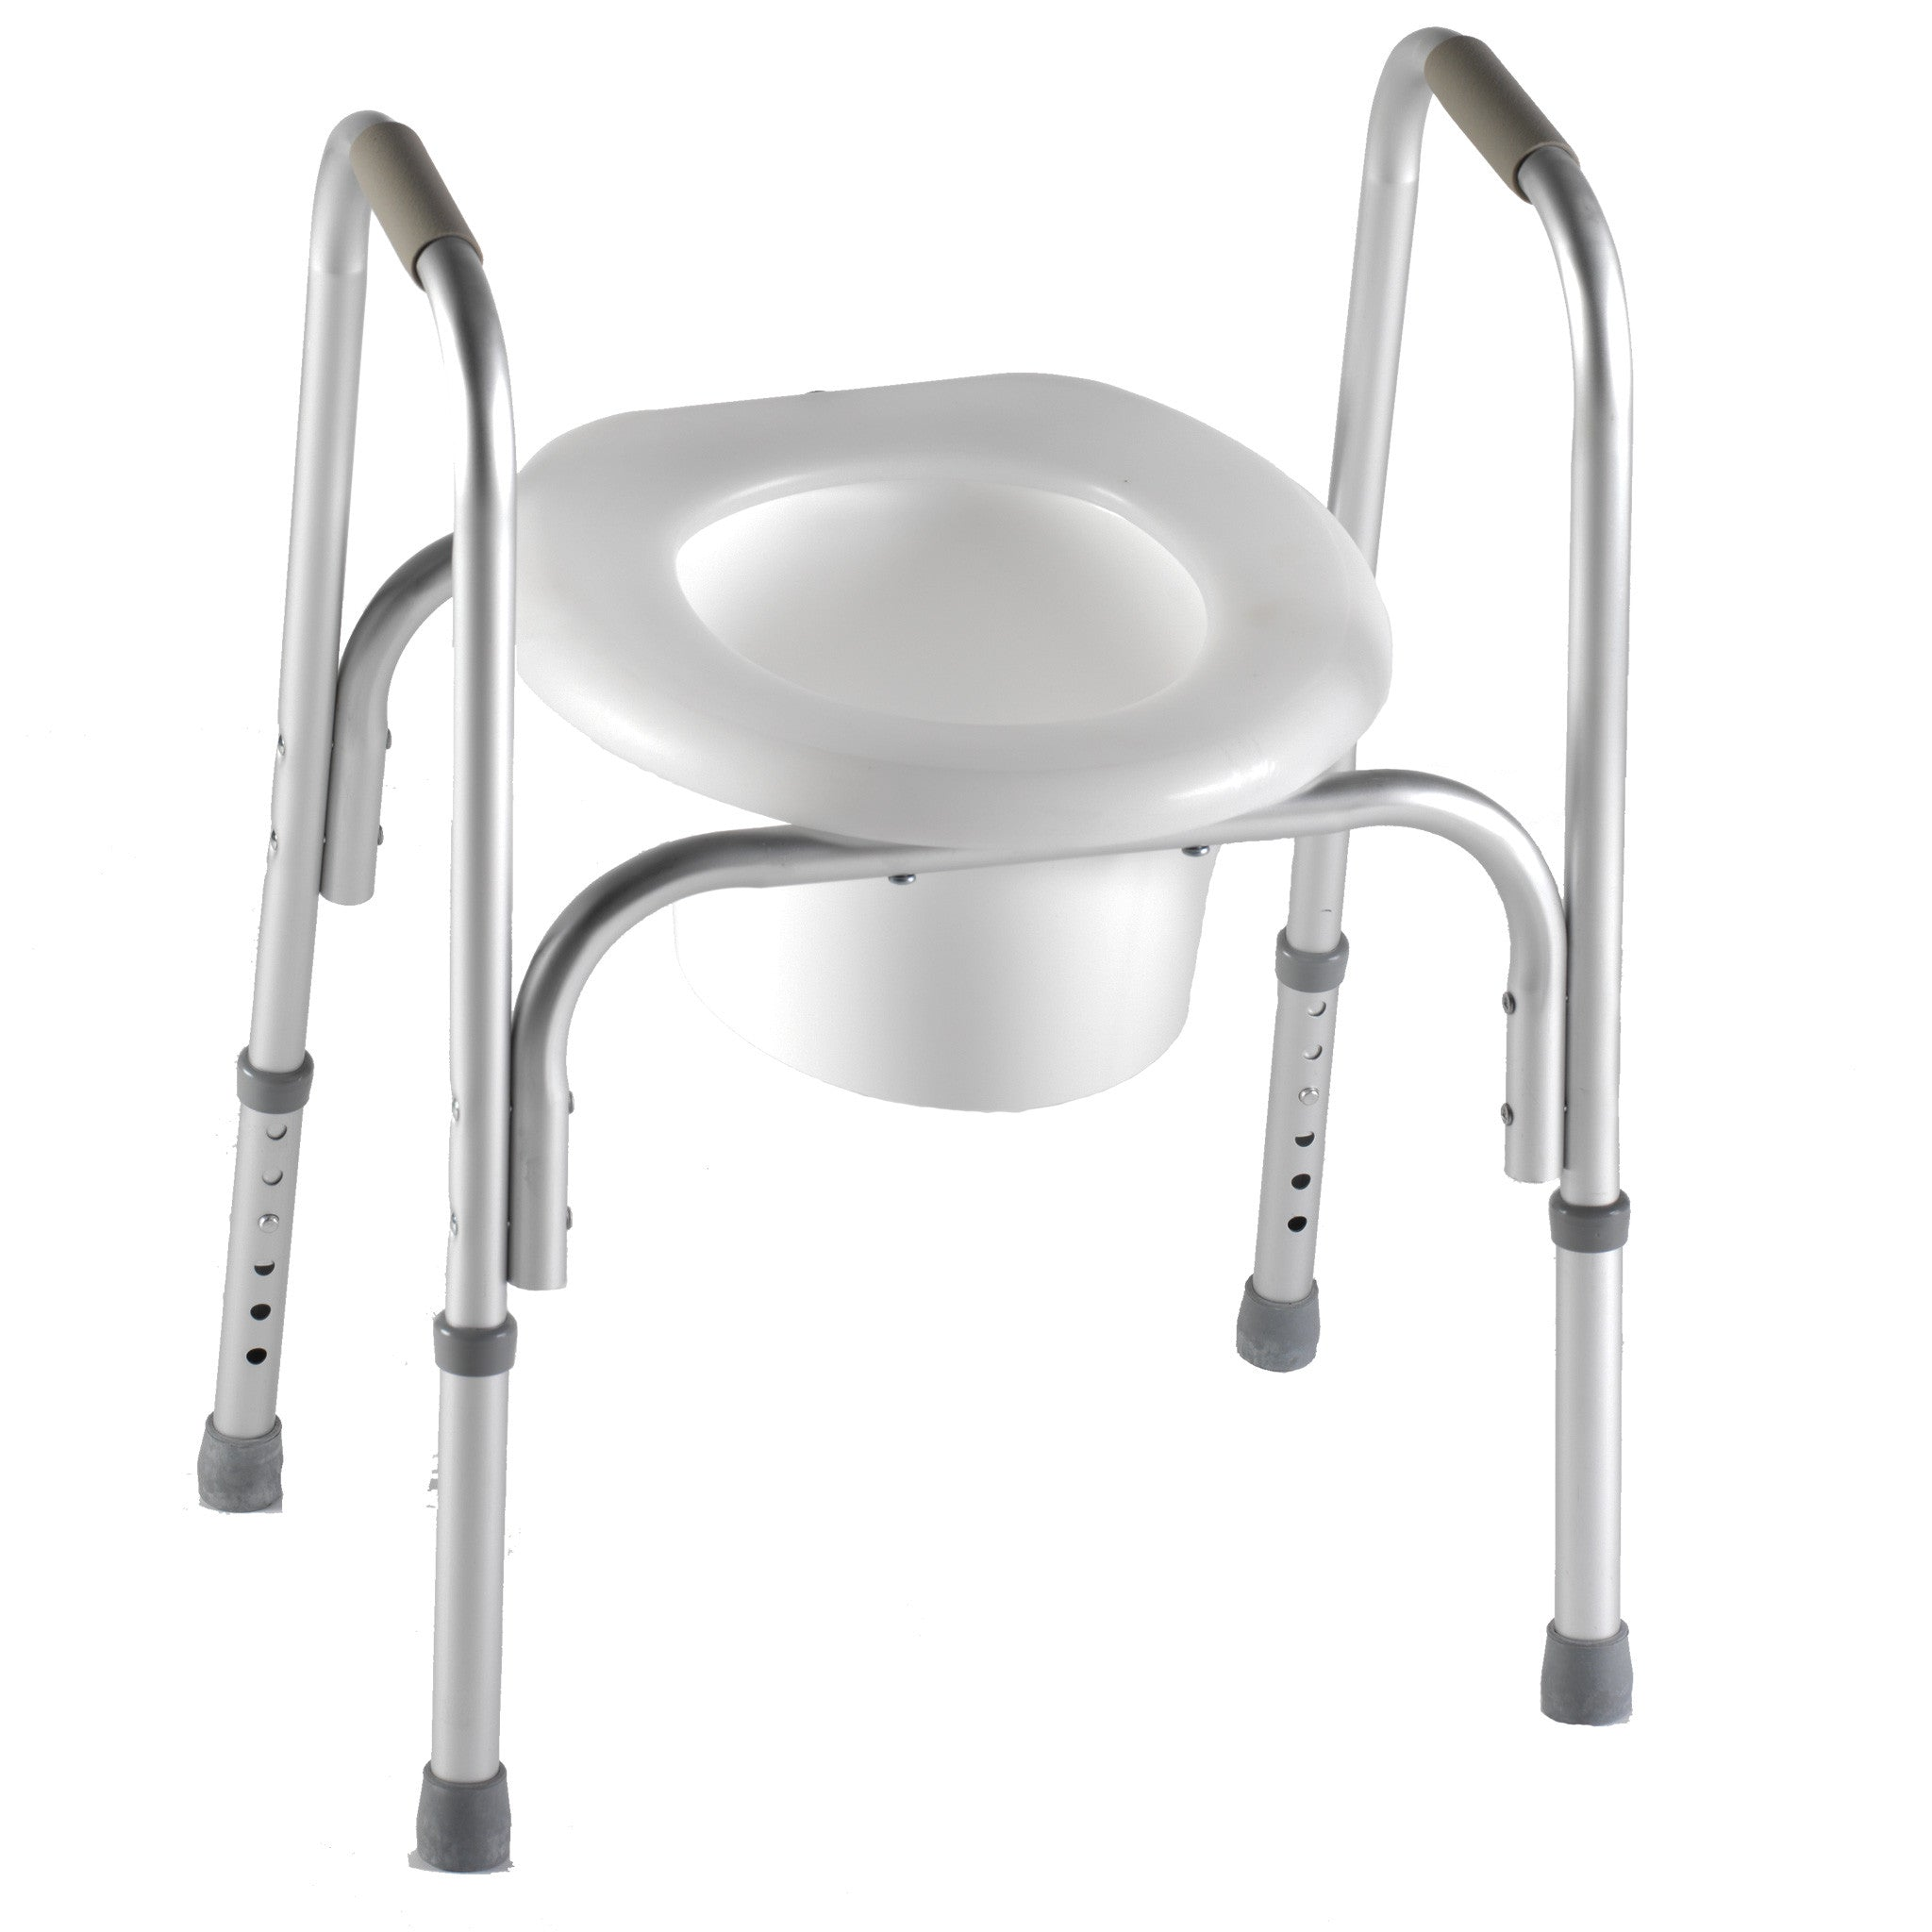 Incredible 7007 Raised Toilet Seat With Safety Frame Pcpmedical Gmtry Best Dining Table And Chair Ideas Images Gmtryco